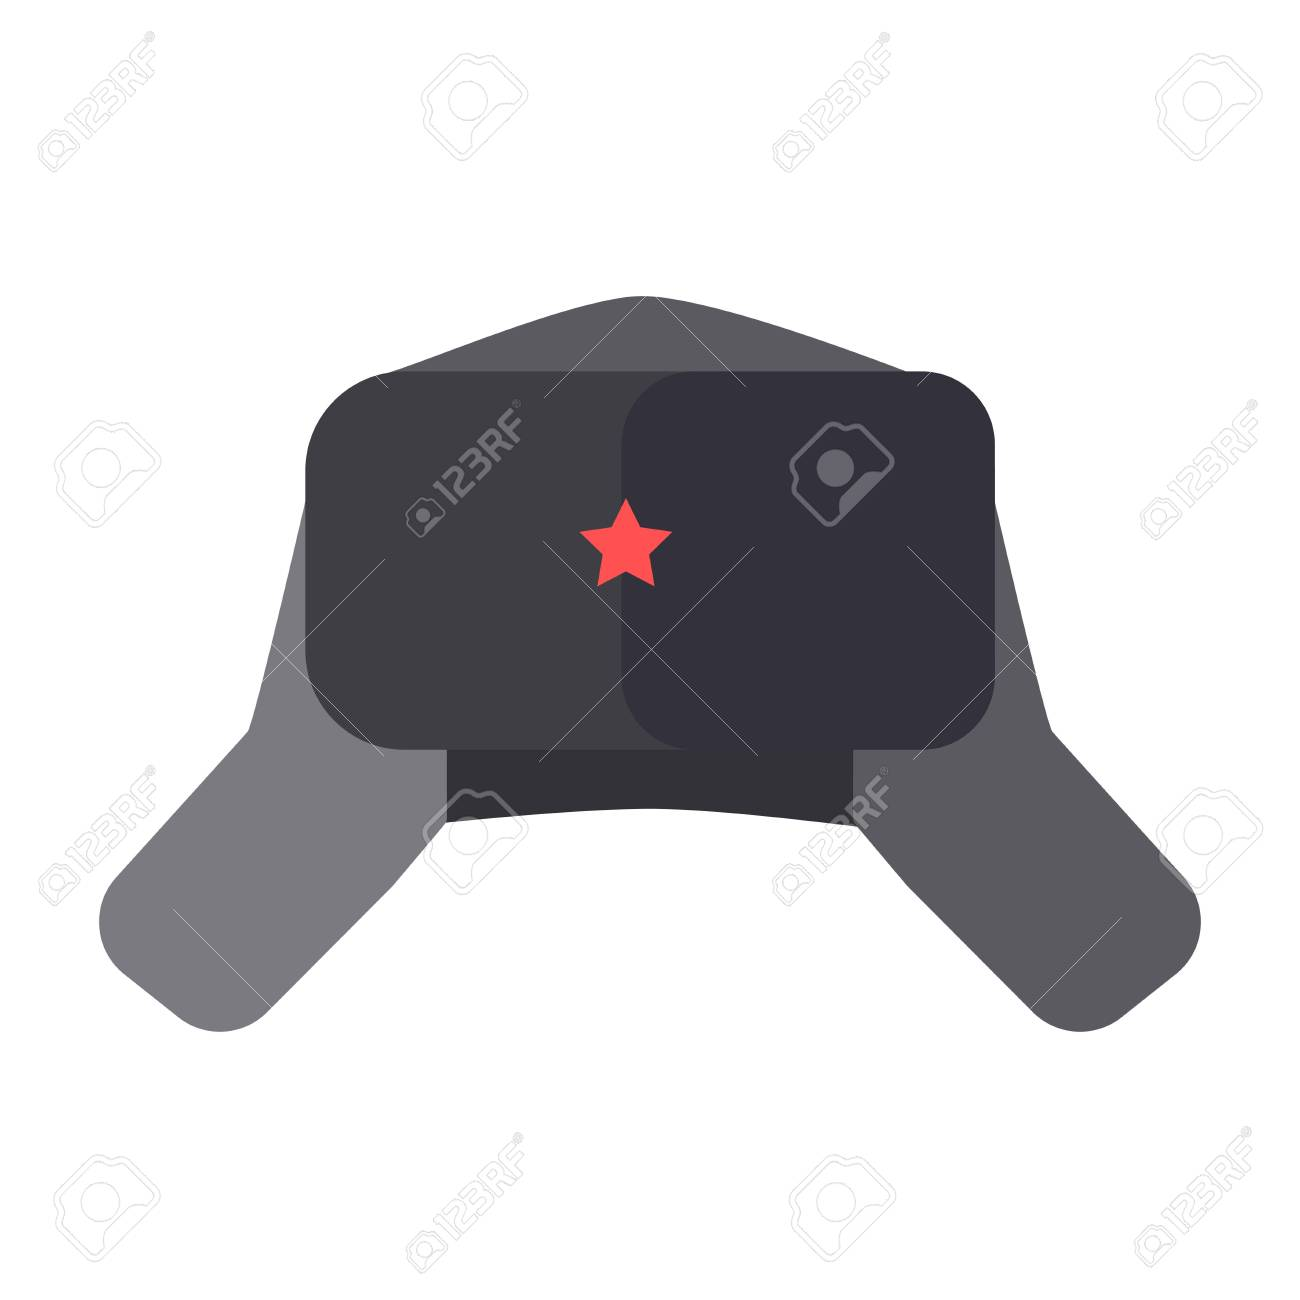 Furry Hat With Ear Flaps And Red Star On Front Royalty Free Cliparts ... d05bd789b8c